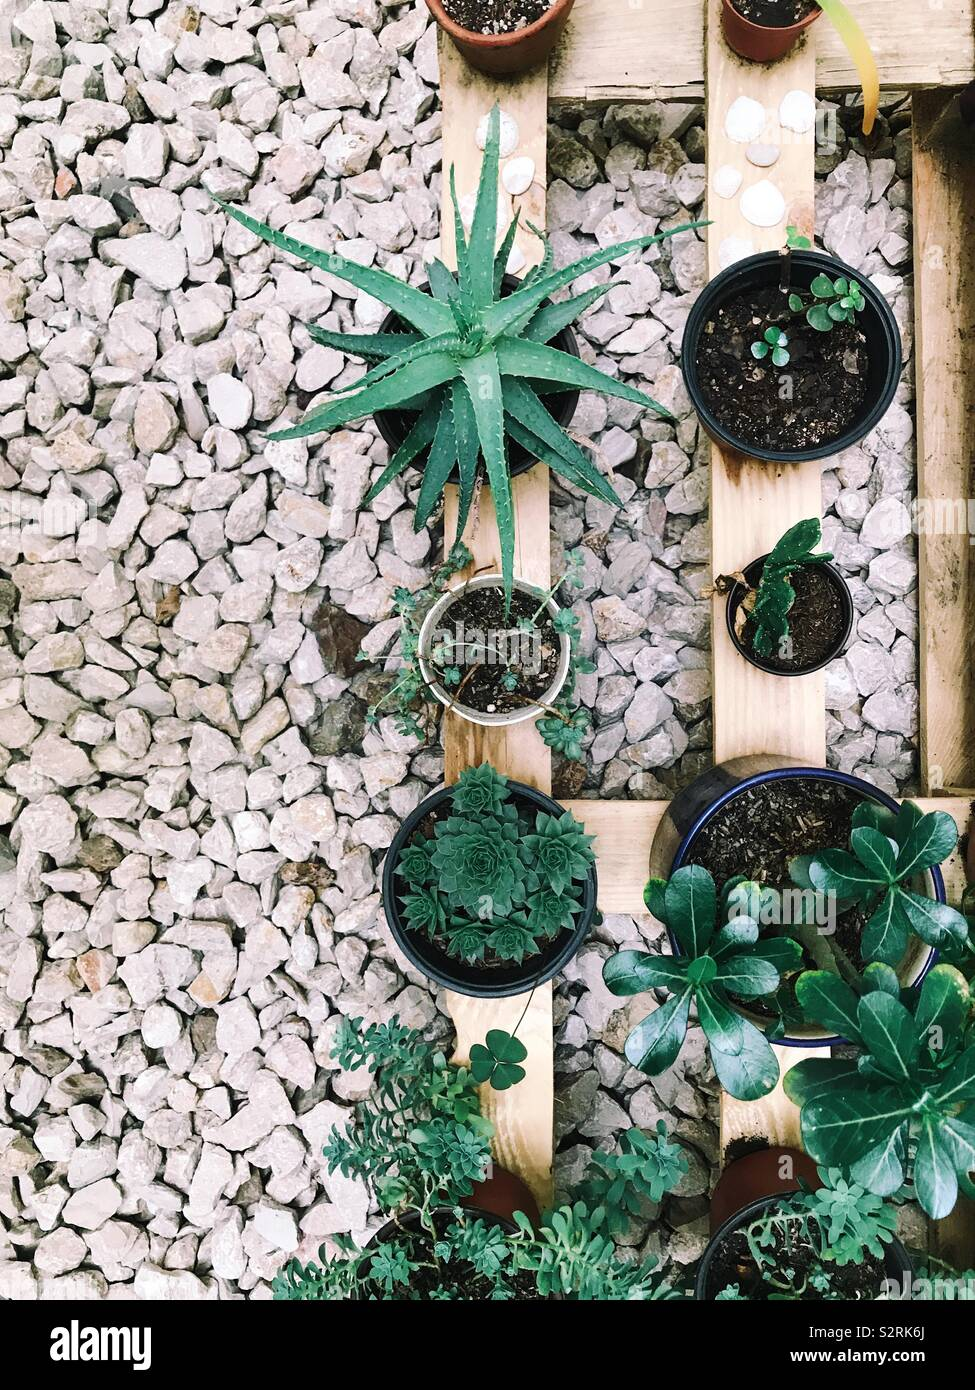 Group of succulents on a wooden tray and gravel floor (vertical).  Aloe, hecheveria, and others. Oaxaca de Juarez, Oaxaca, Mexico. 4th of July 2019 Stock Photo